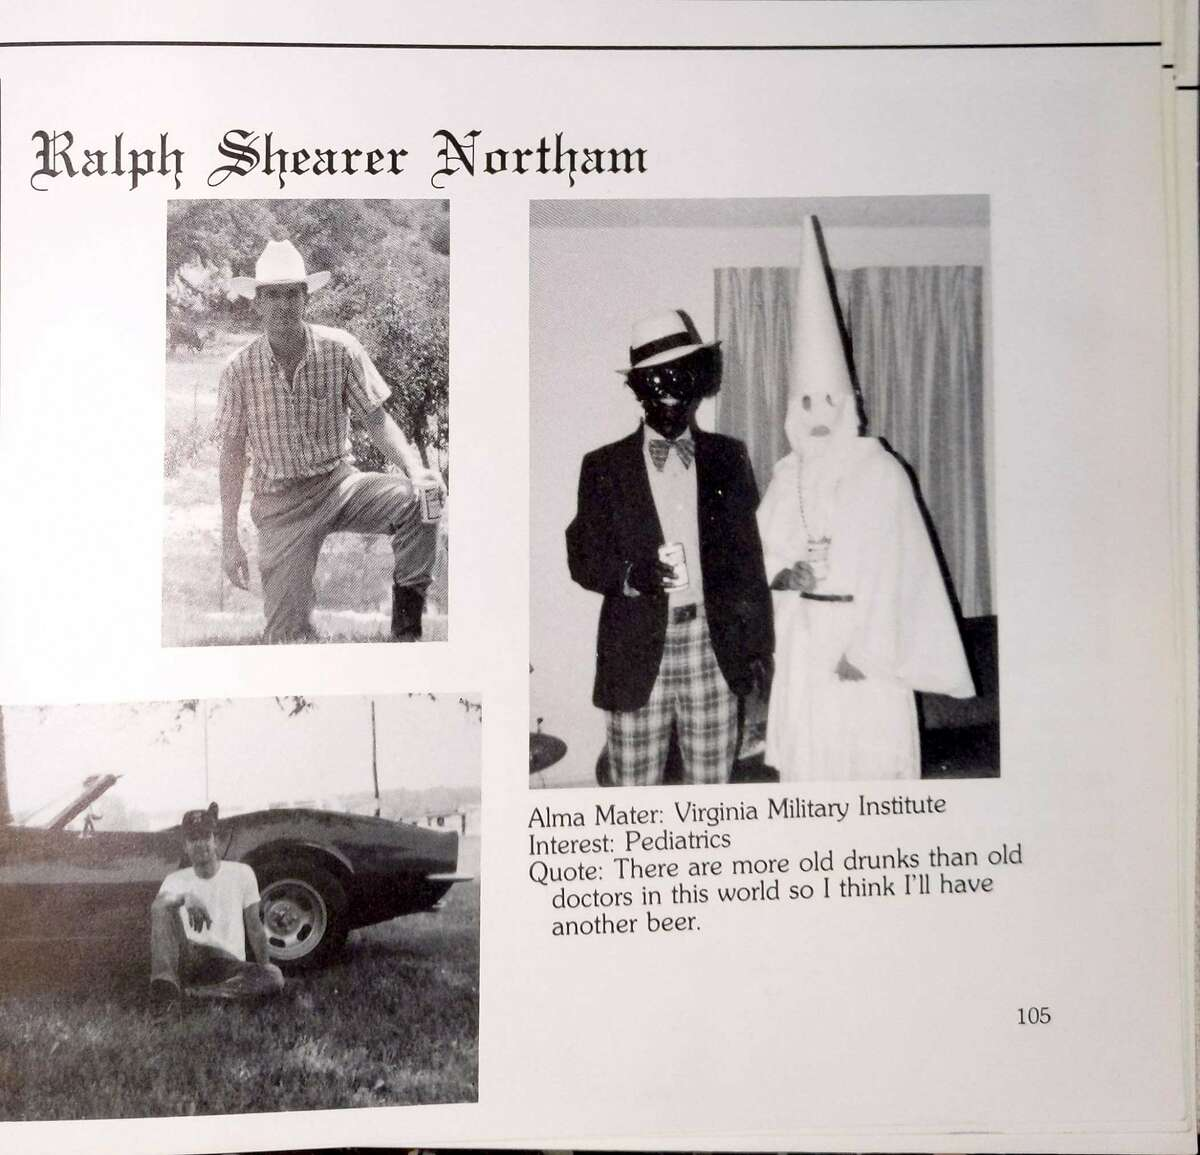 Ralph Northam's page in the 1984 yearbook of Eastern Virginia Medical School in which two people are wearing blackface and a KKK costume. MUST CREDIT: Obtained by The Washington Post